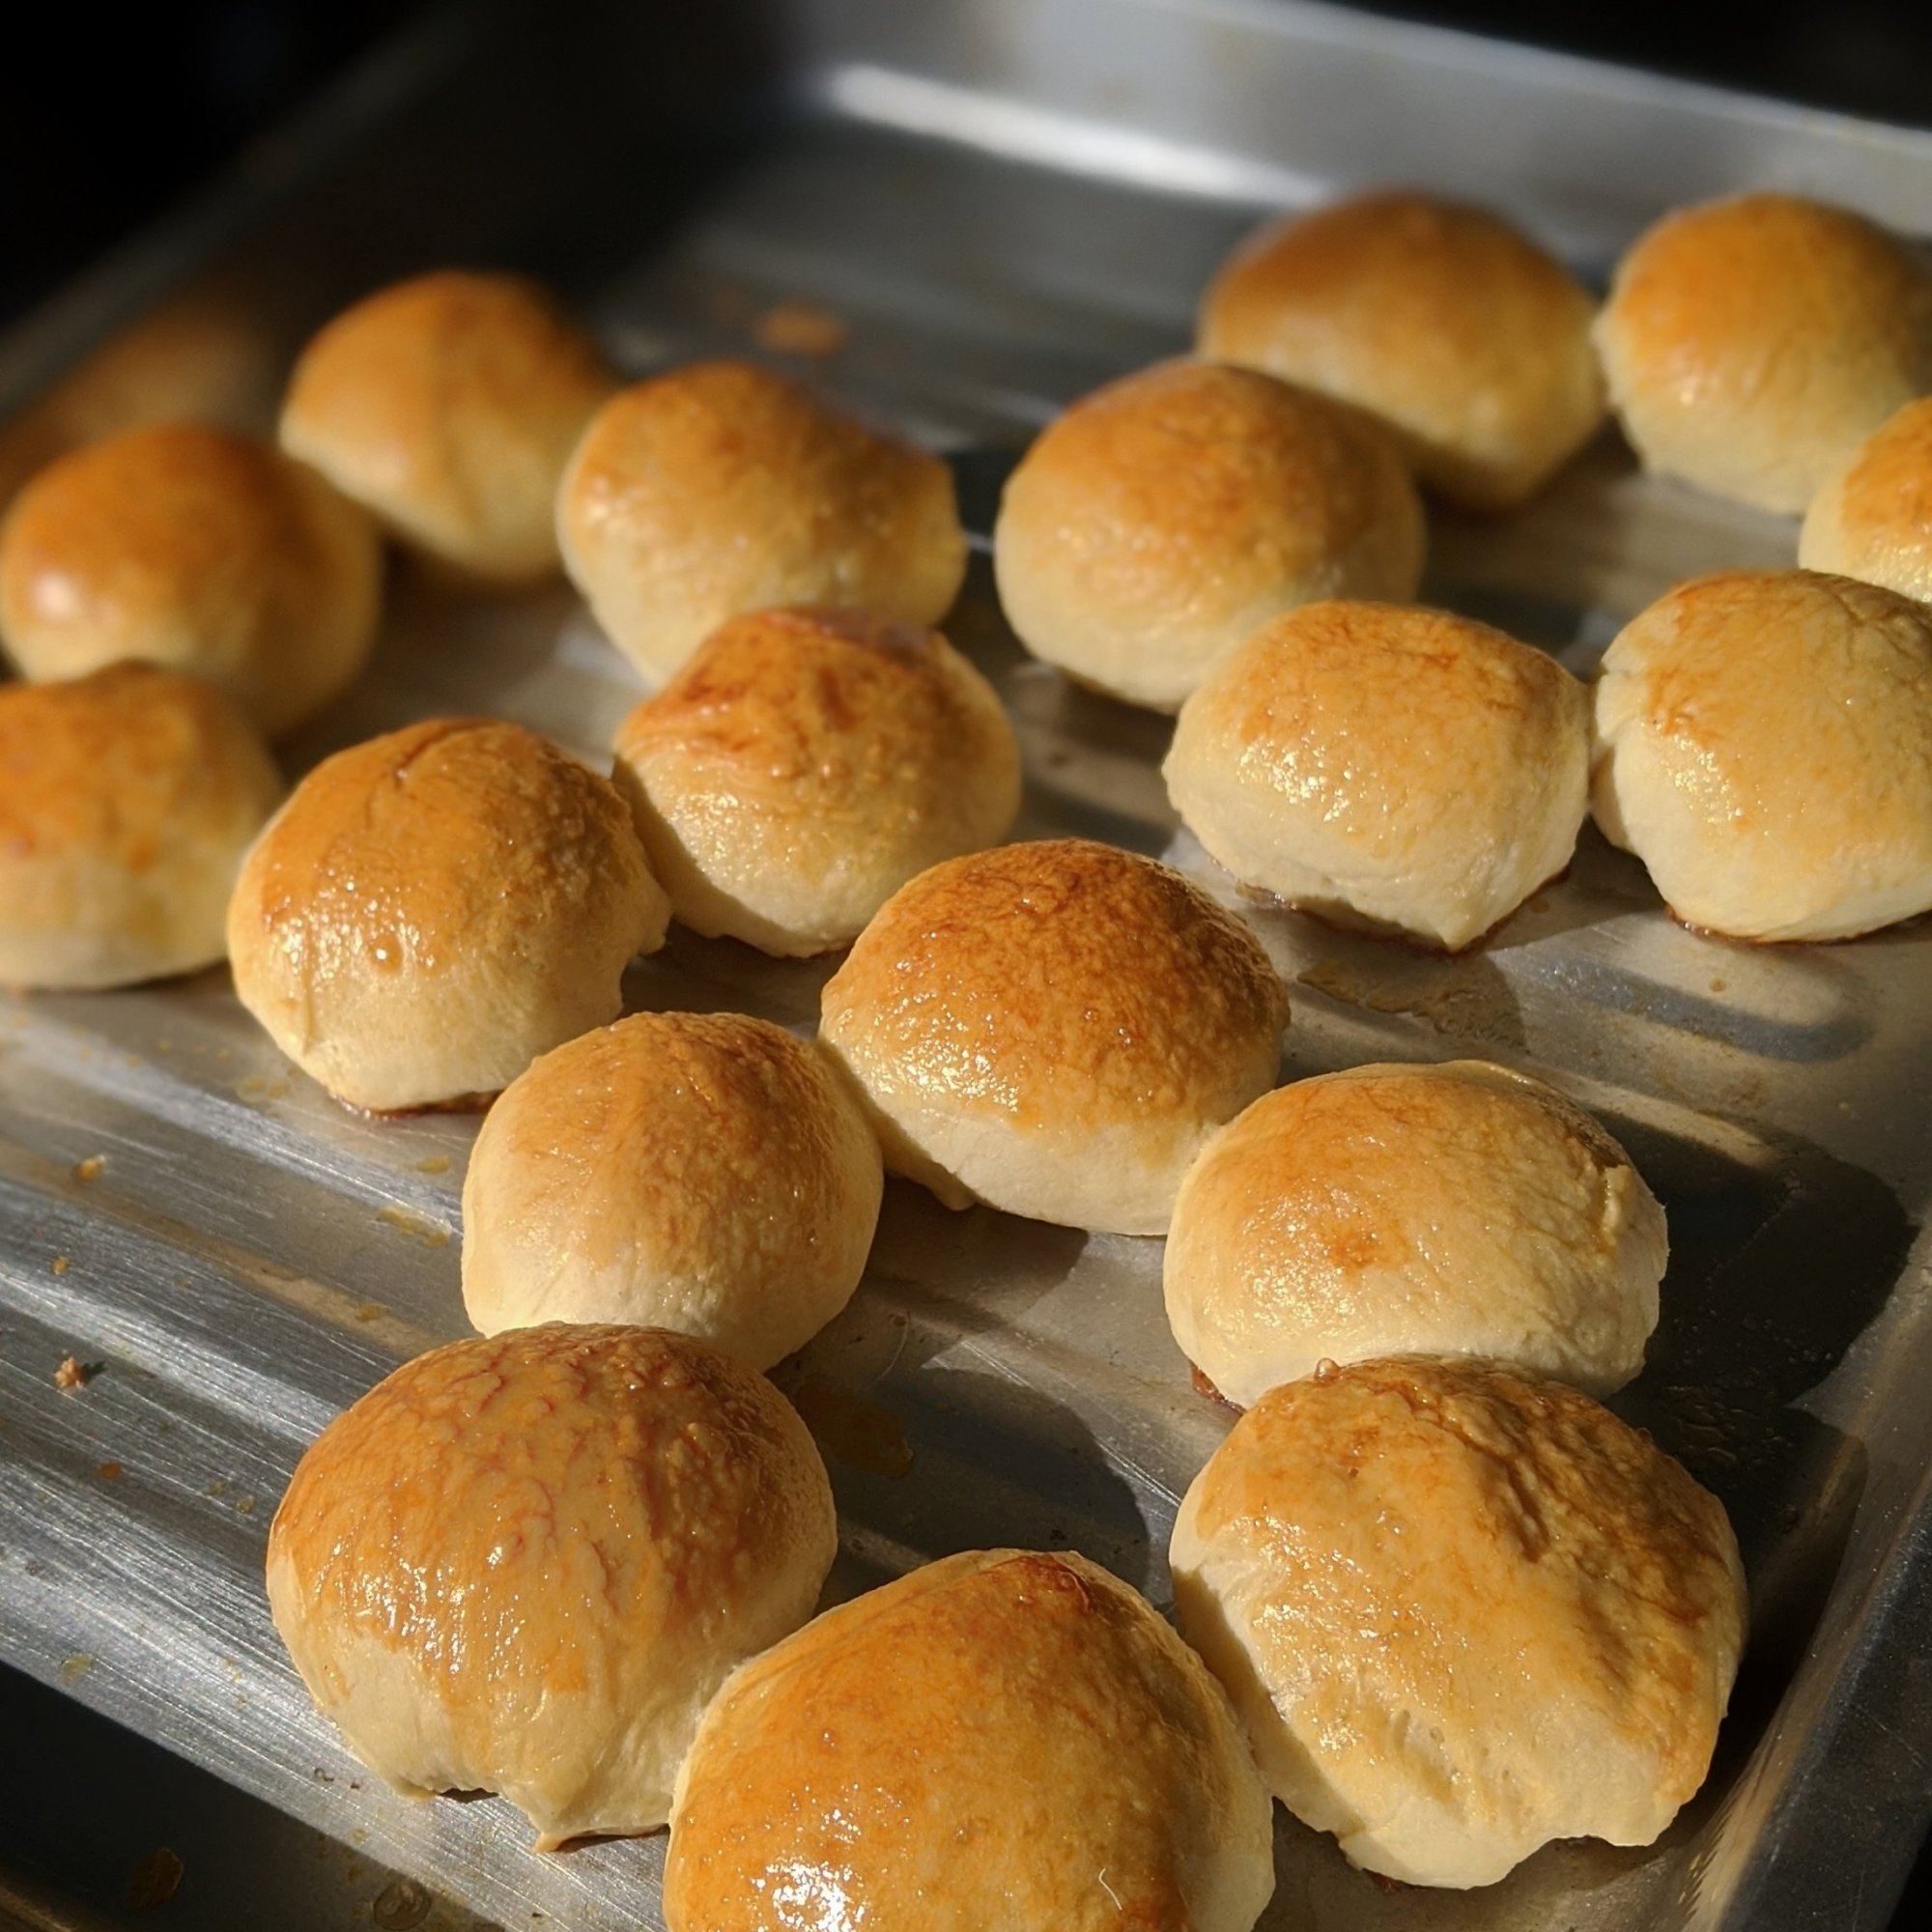 Take out the hot buns